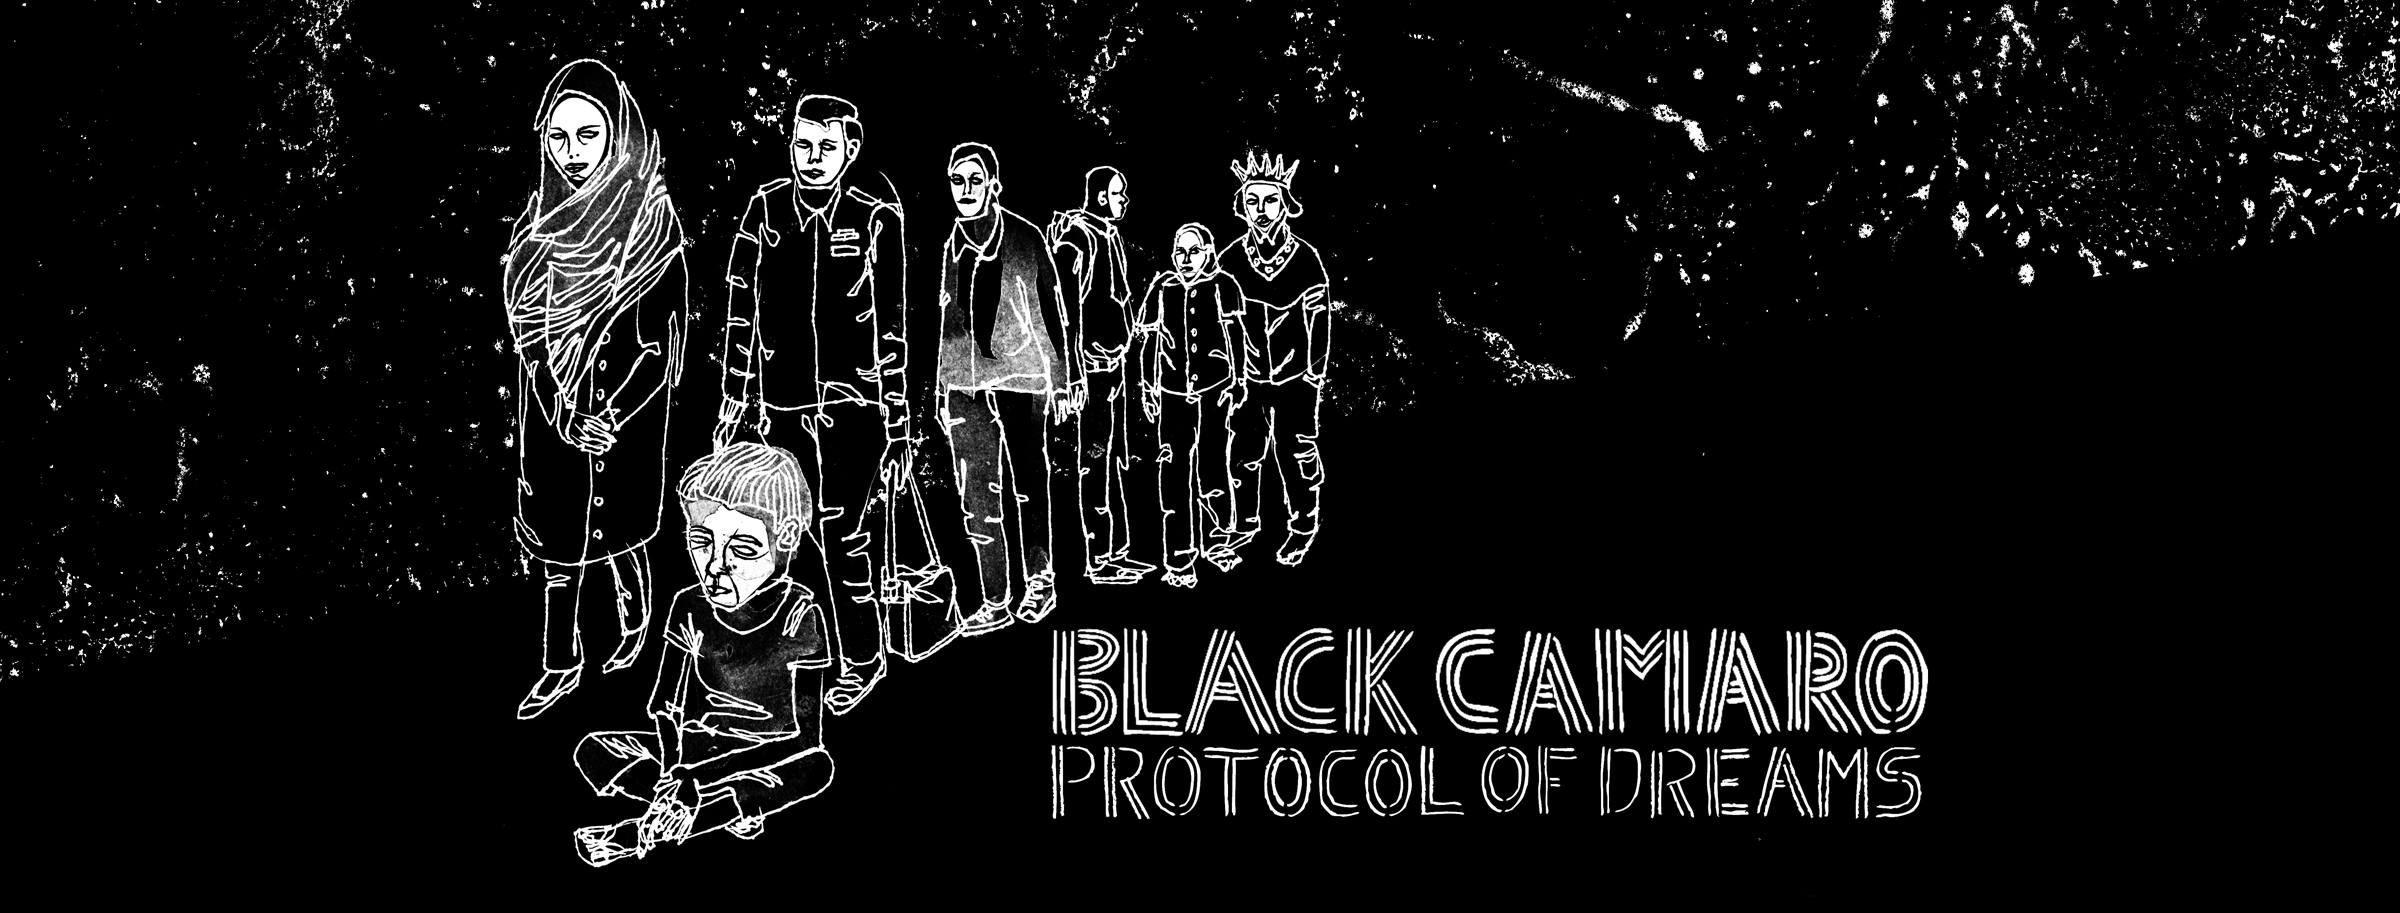 Preorders for Black Camaro 'Protocol Of Dreams' are available  HERE